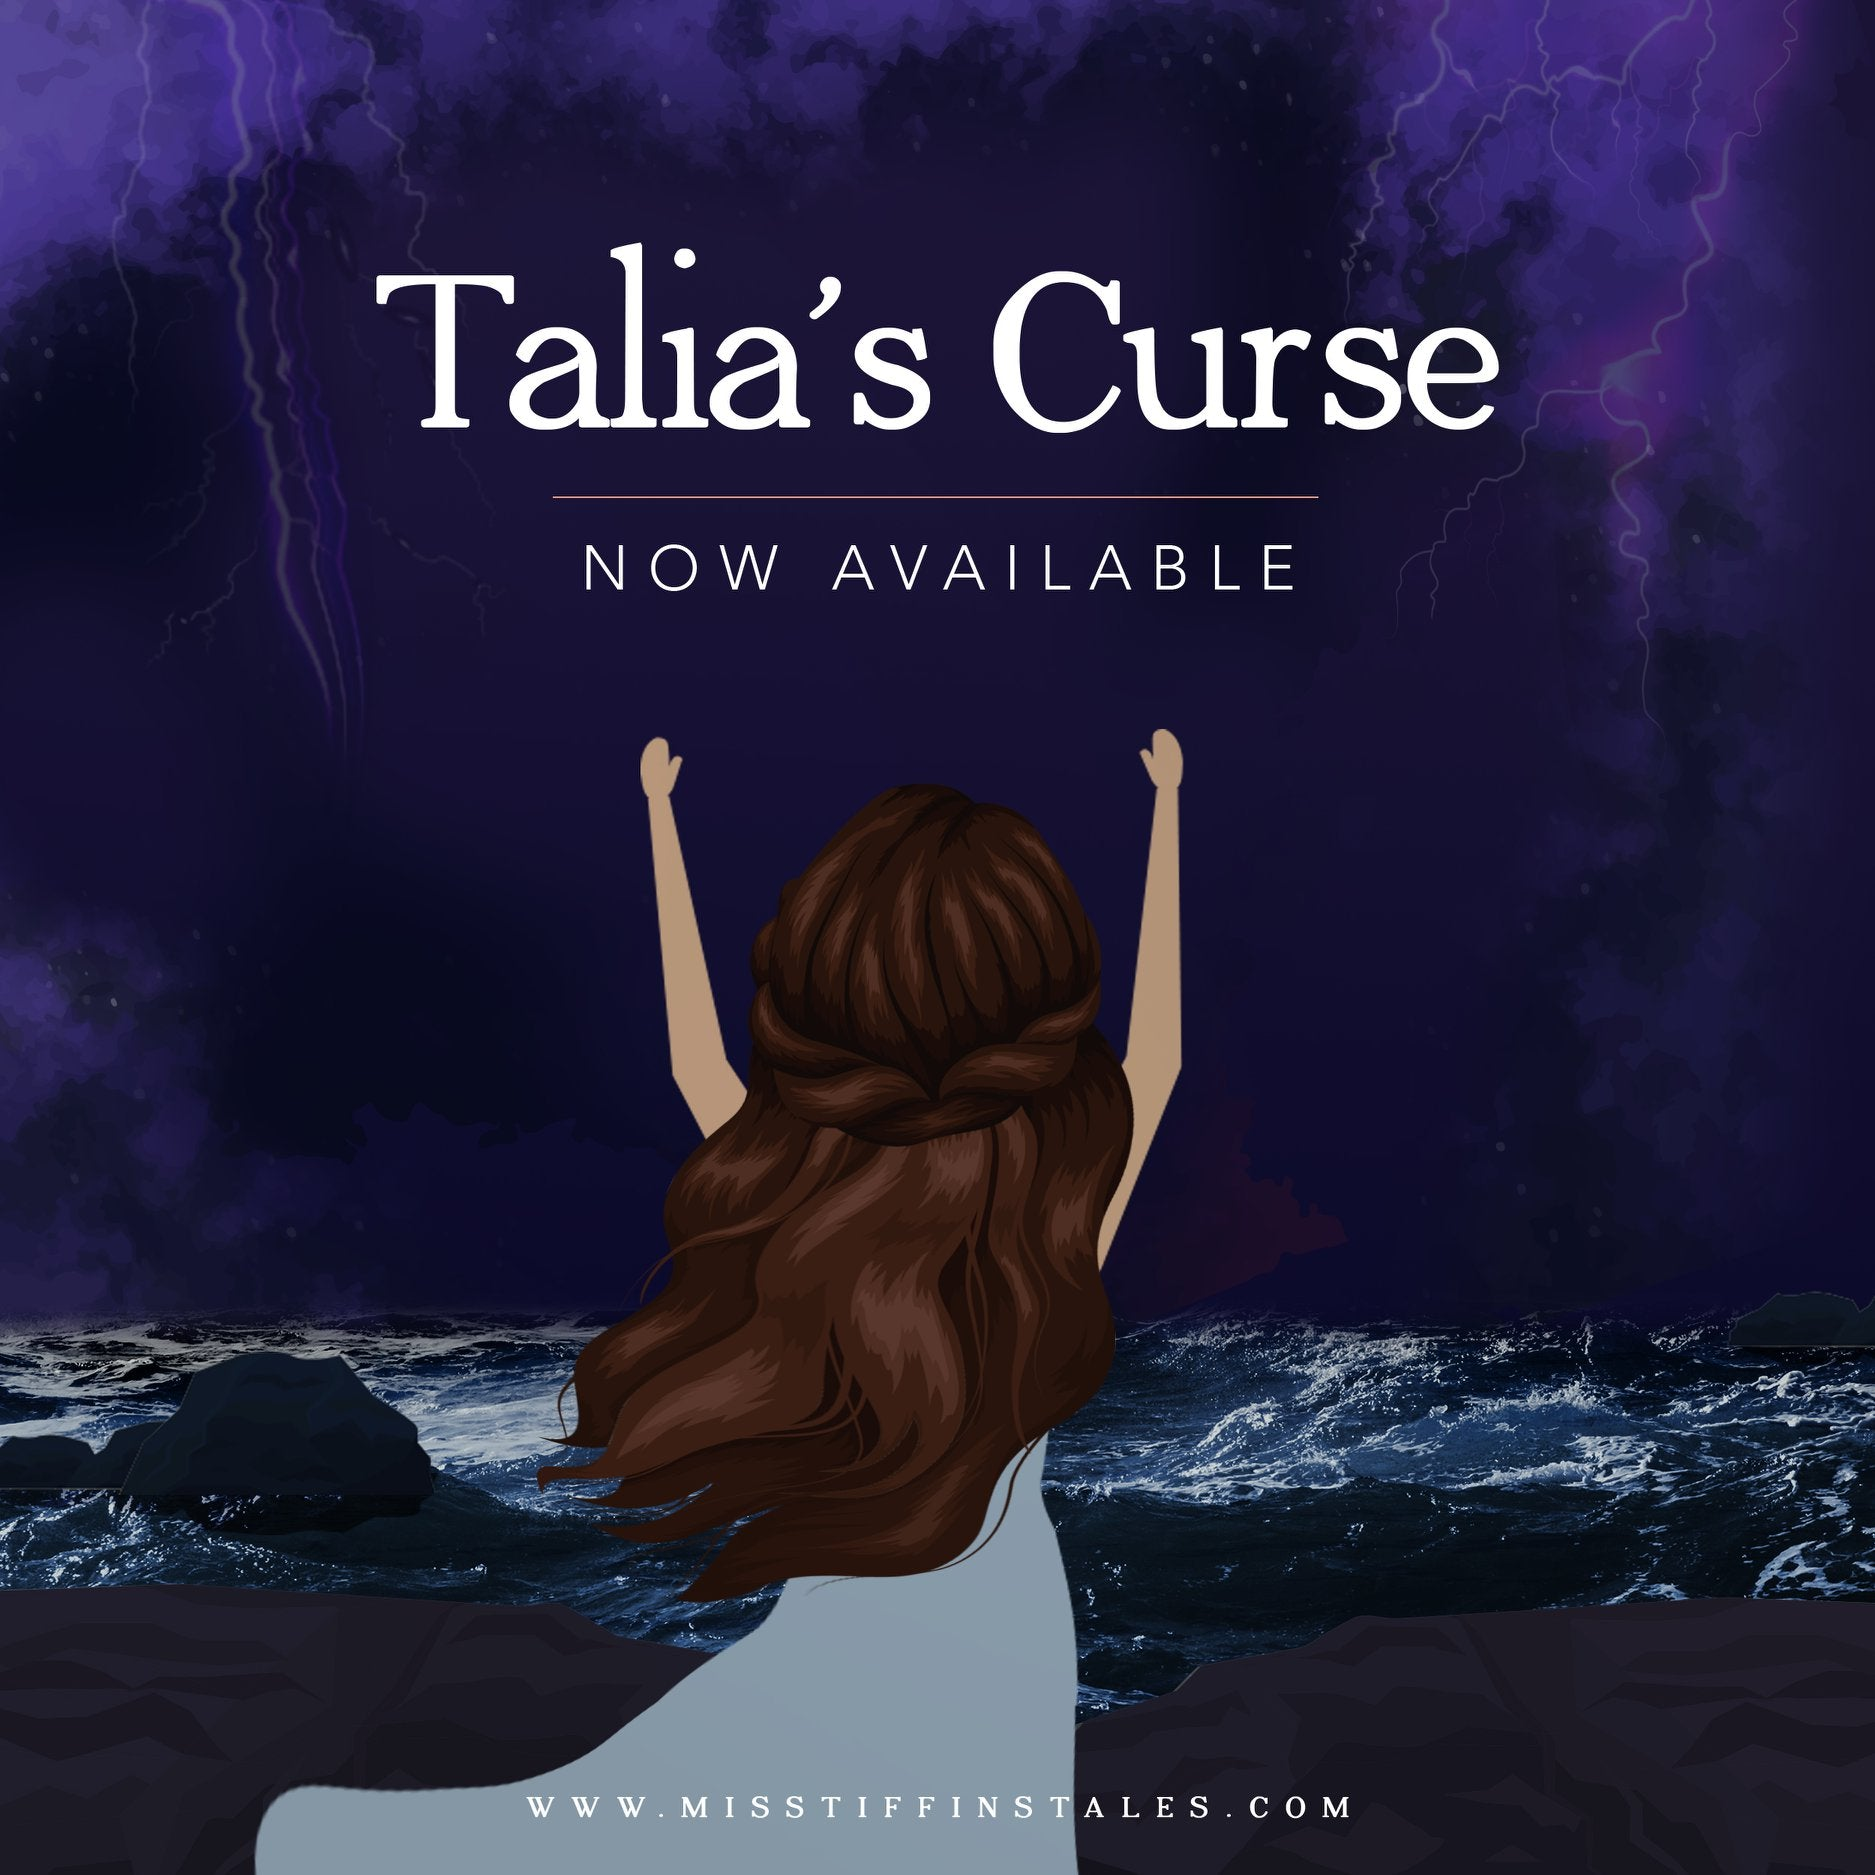 Talia's Curse, Years 5 and 6, Tales of Fear and Suspense